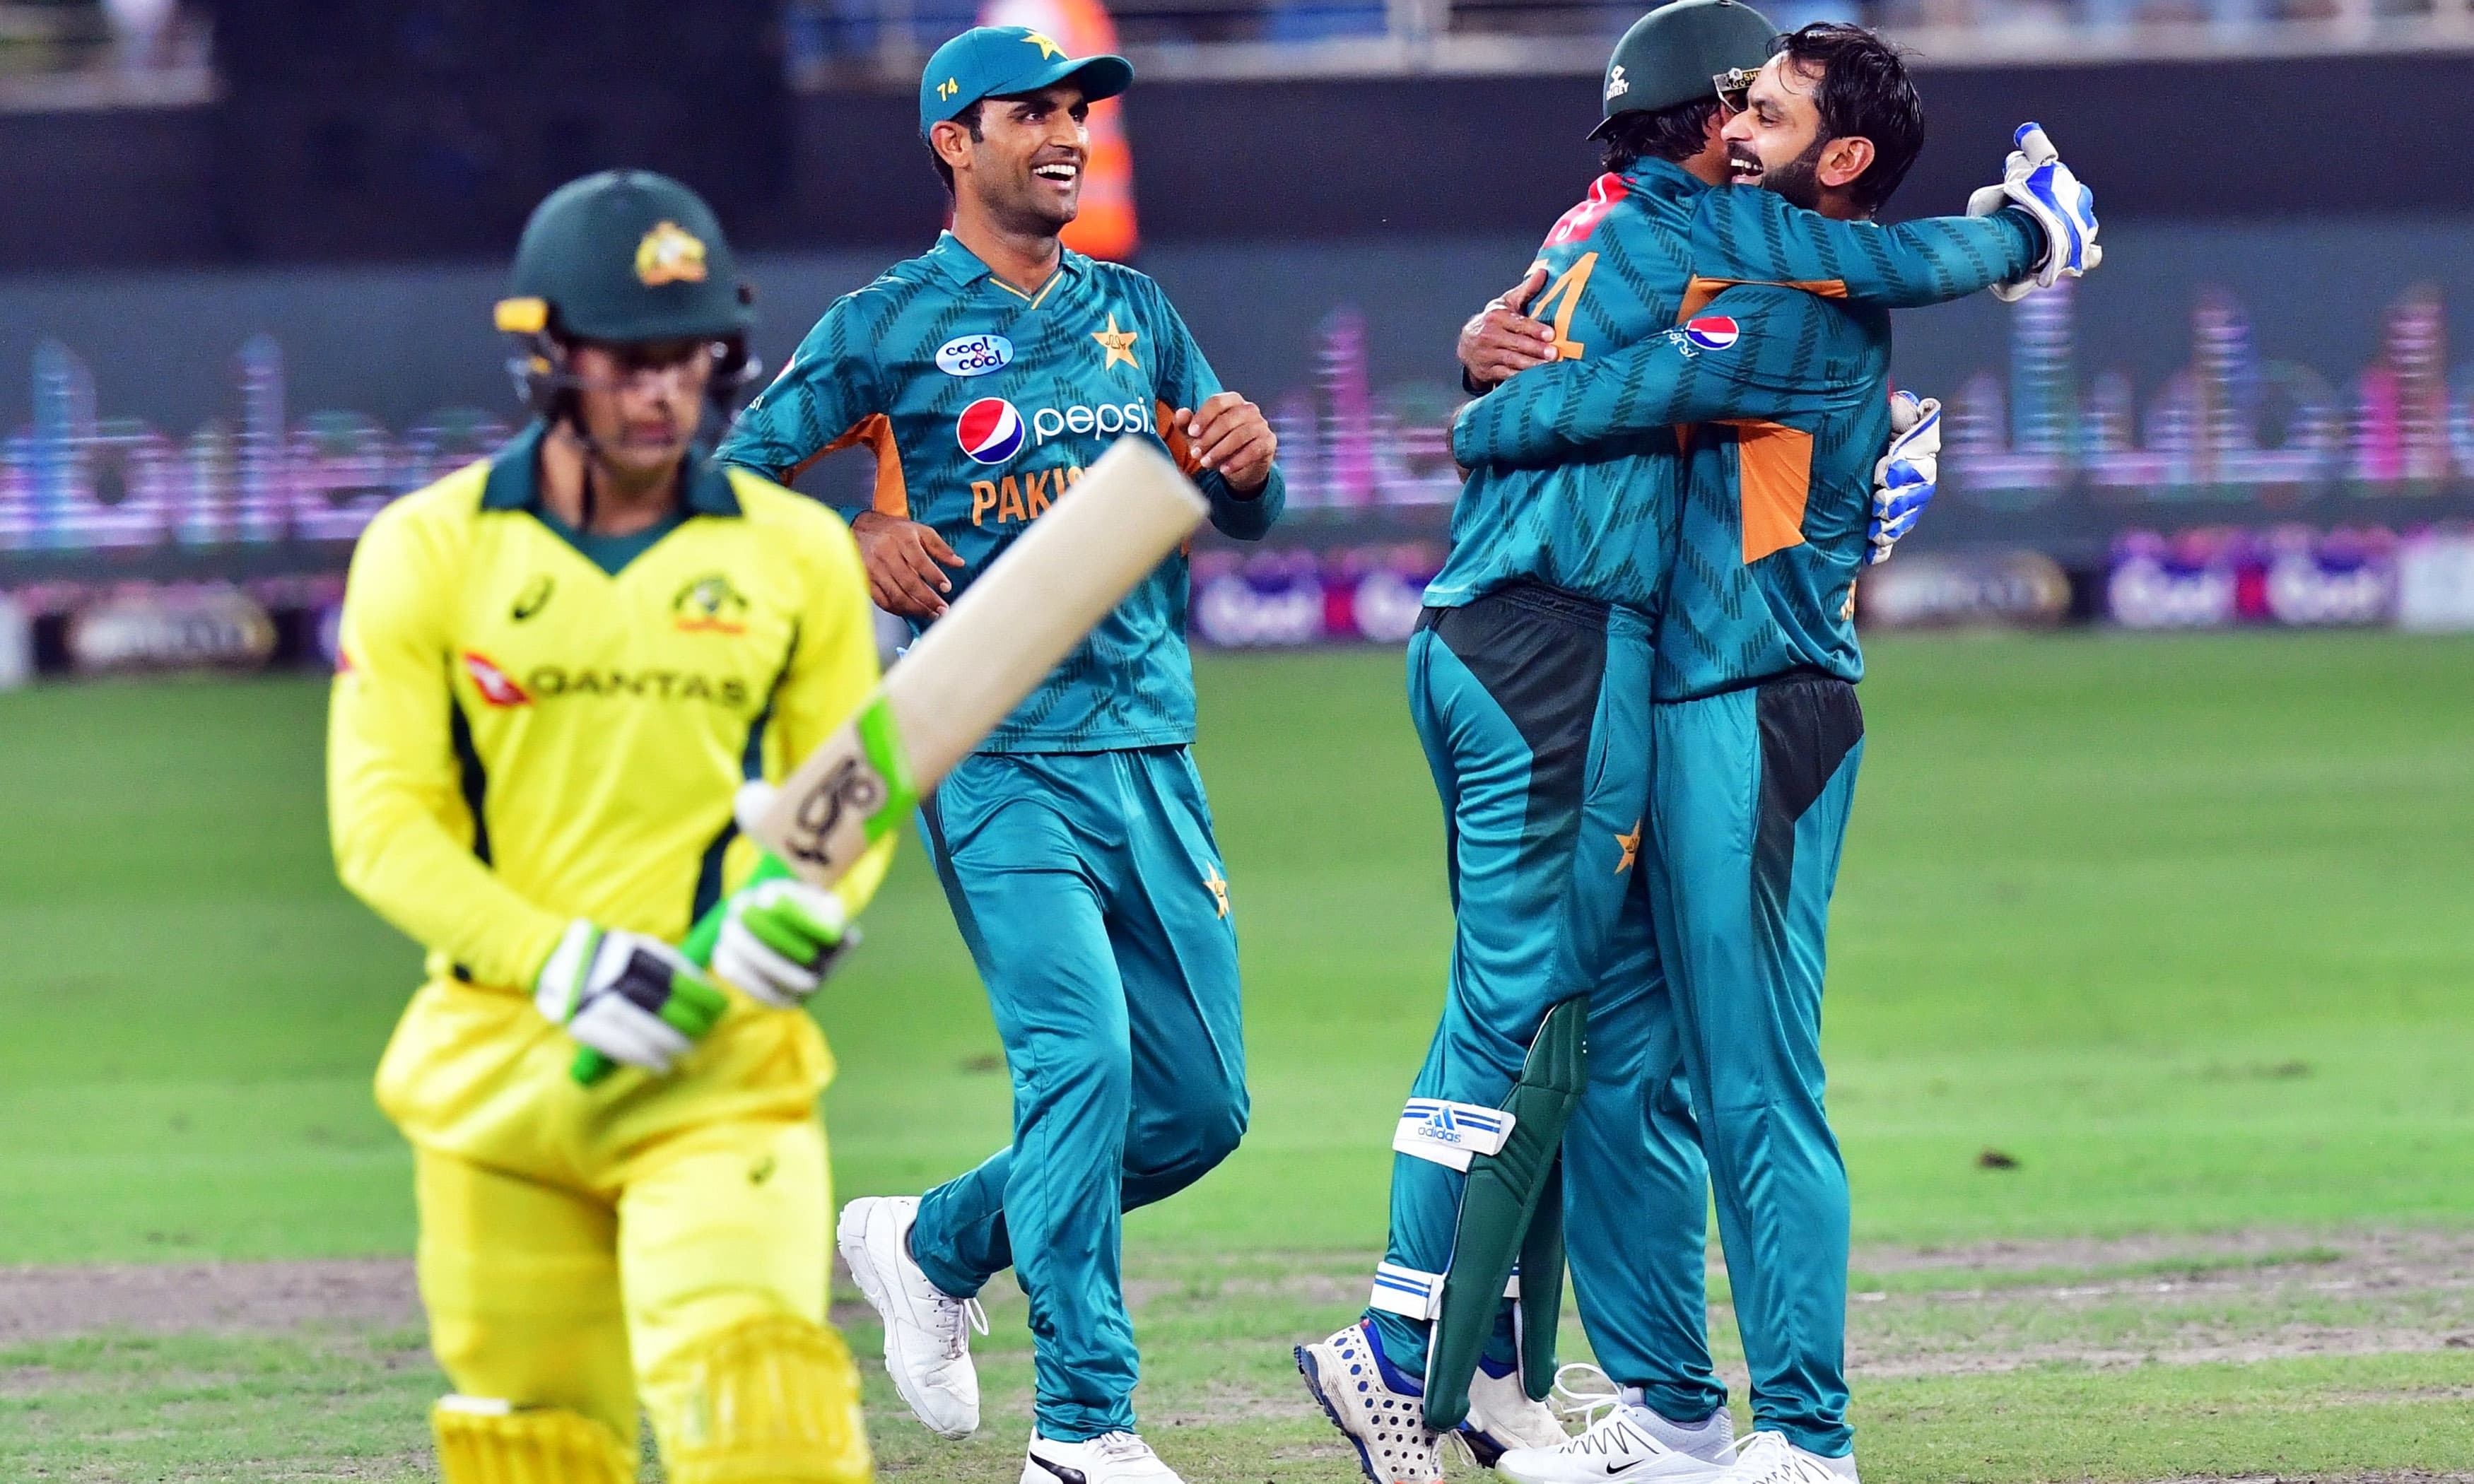 Muhammad Hafez celebrates after dismissing Australian cricketer Alex Carey.—AFP